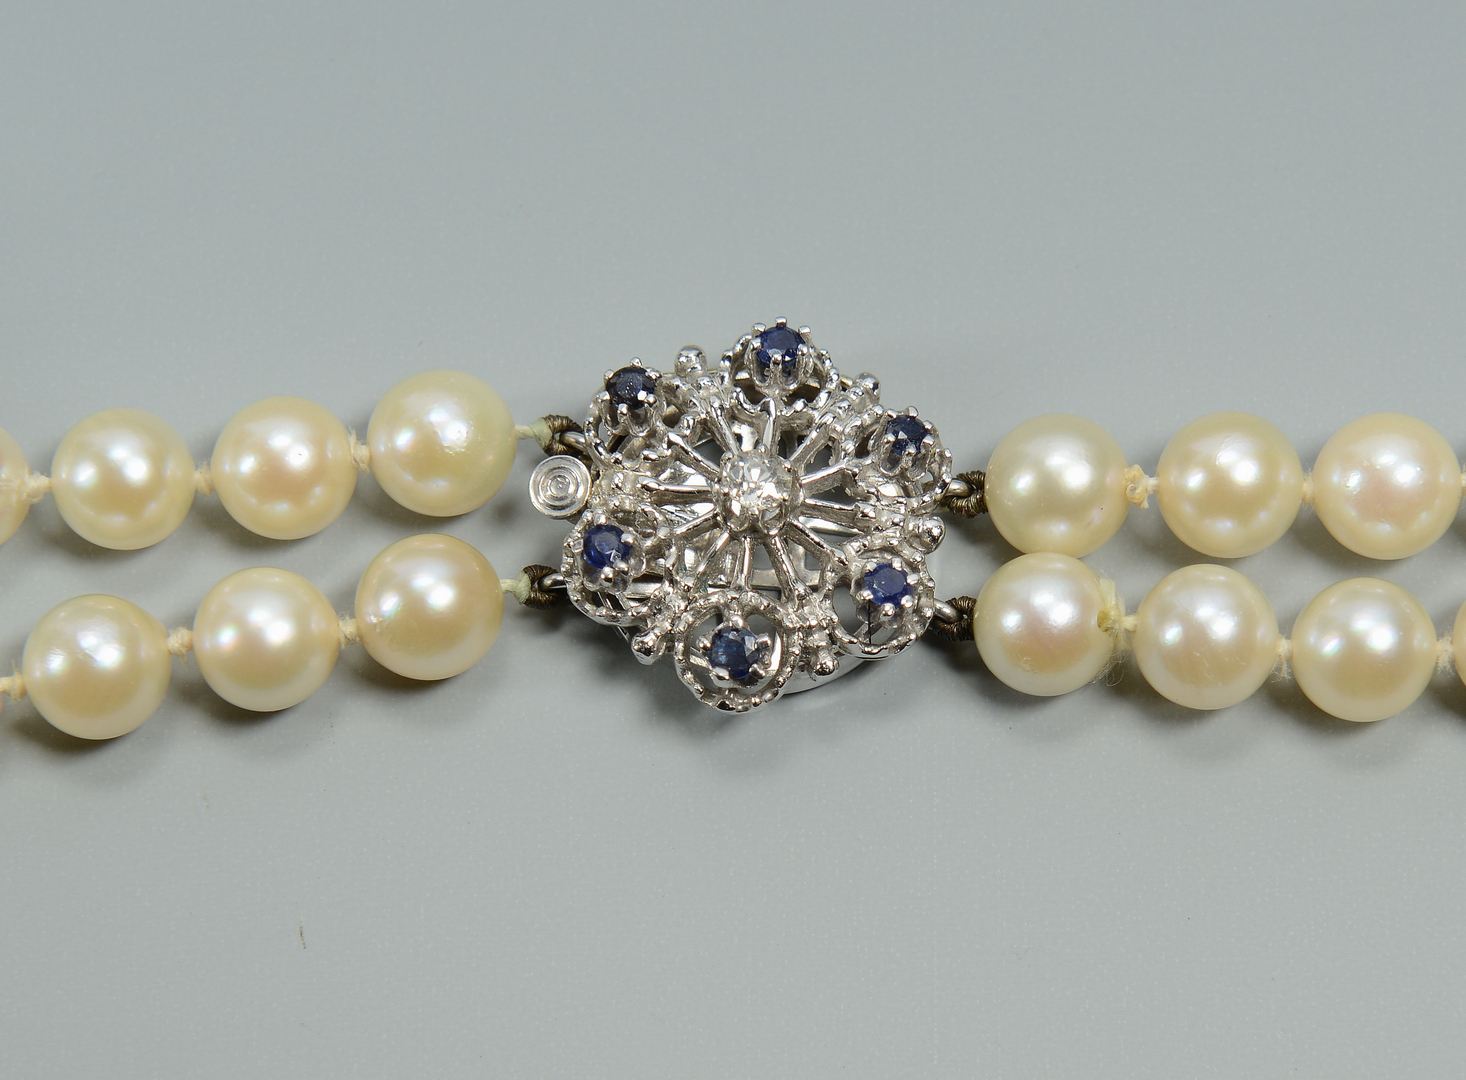 Lot 3088226: Pearl Necklace w/ 14k Dia & Sapphire Clasp